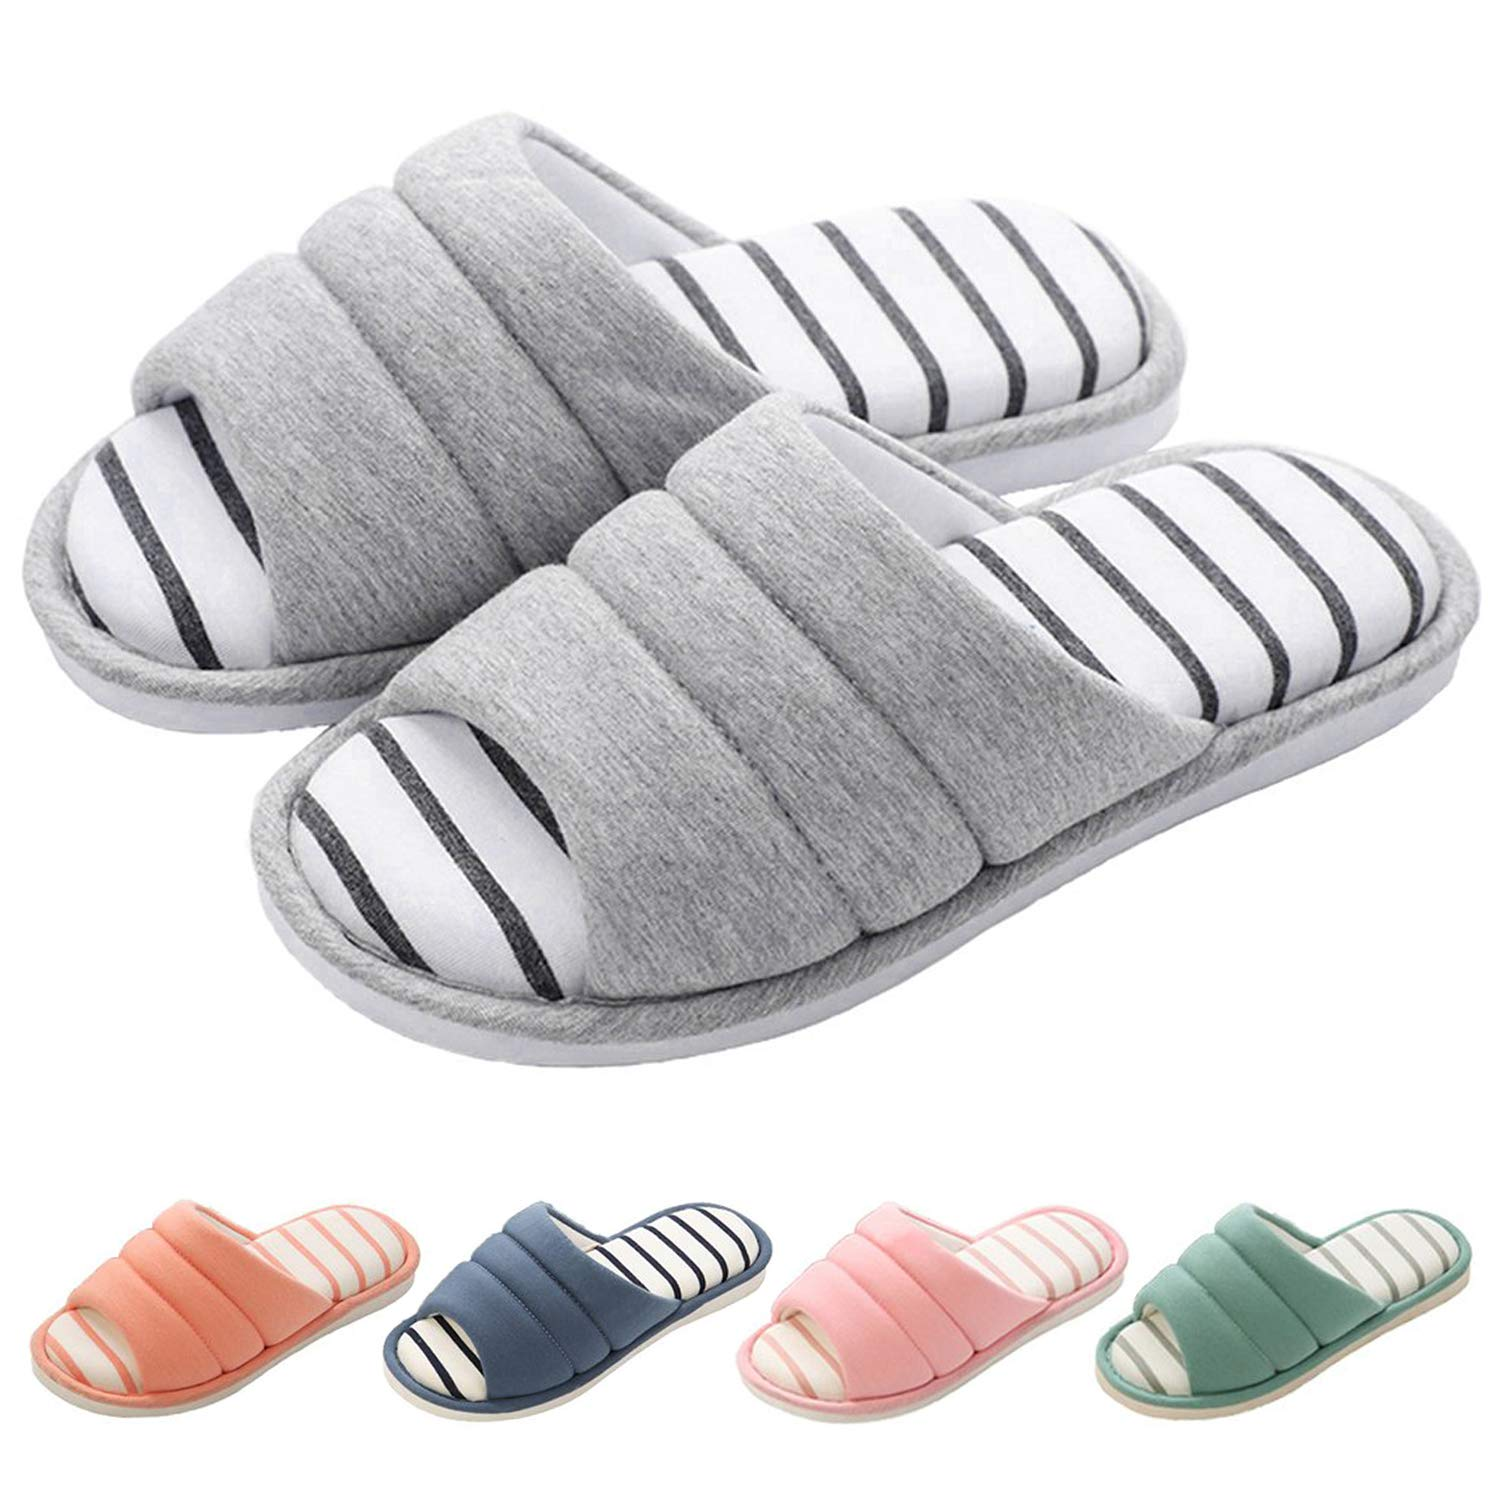 shevalues Womens Soft Indoor Slippers Open Toe Cotton Memory Foam Slip on Home Shoes House Slippers